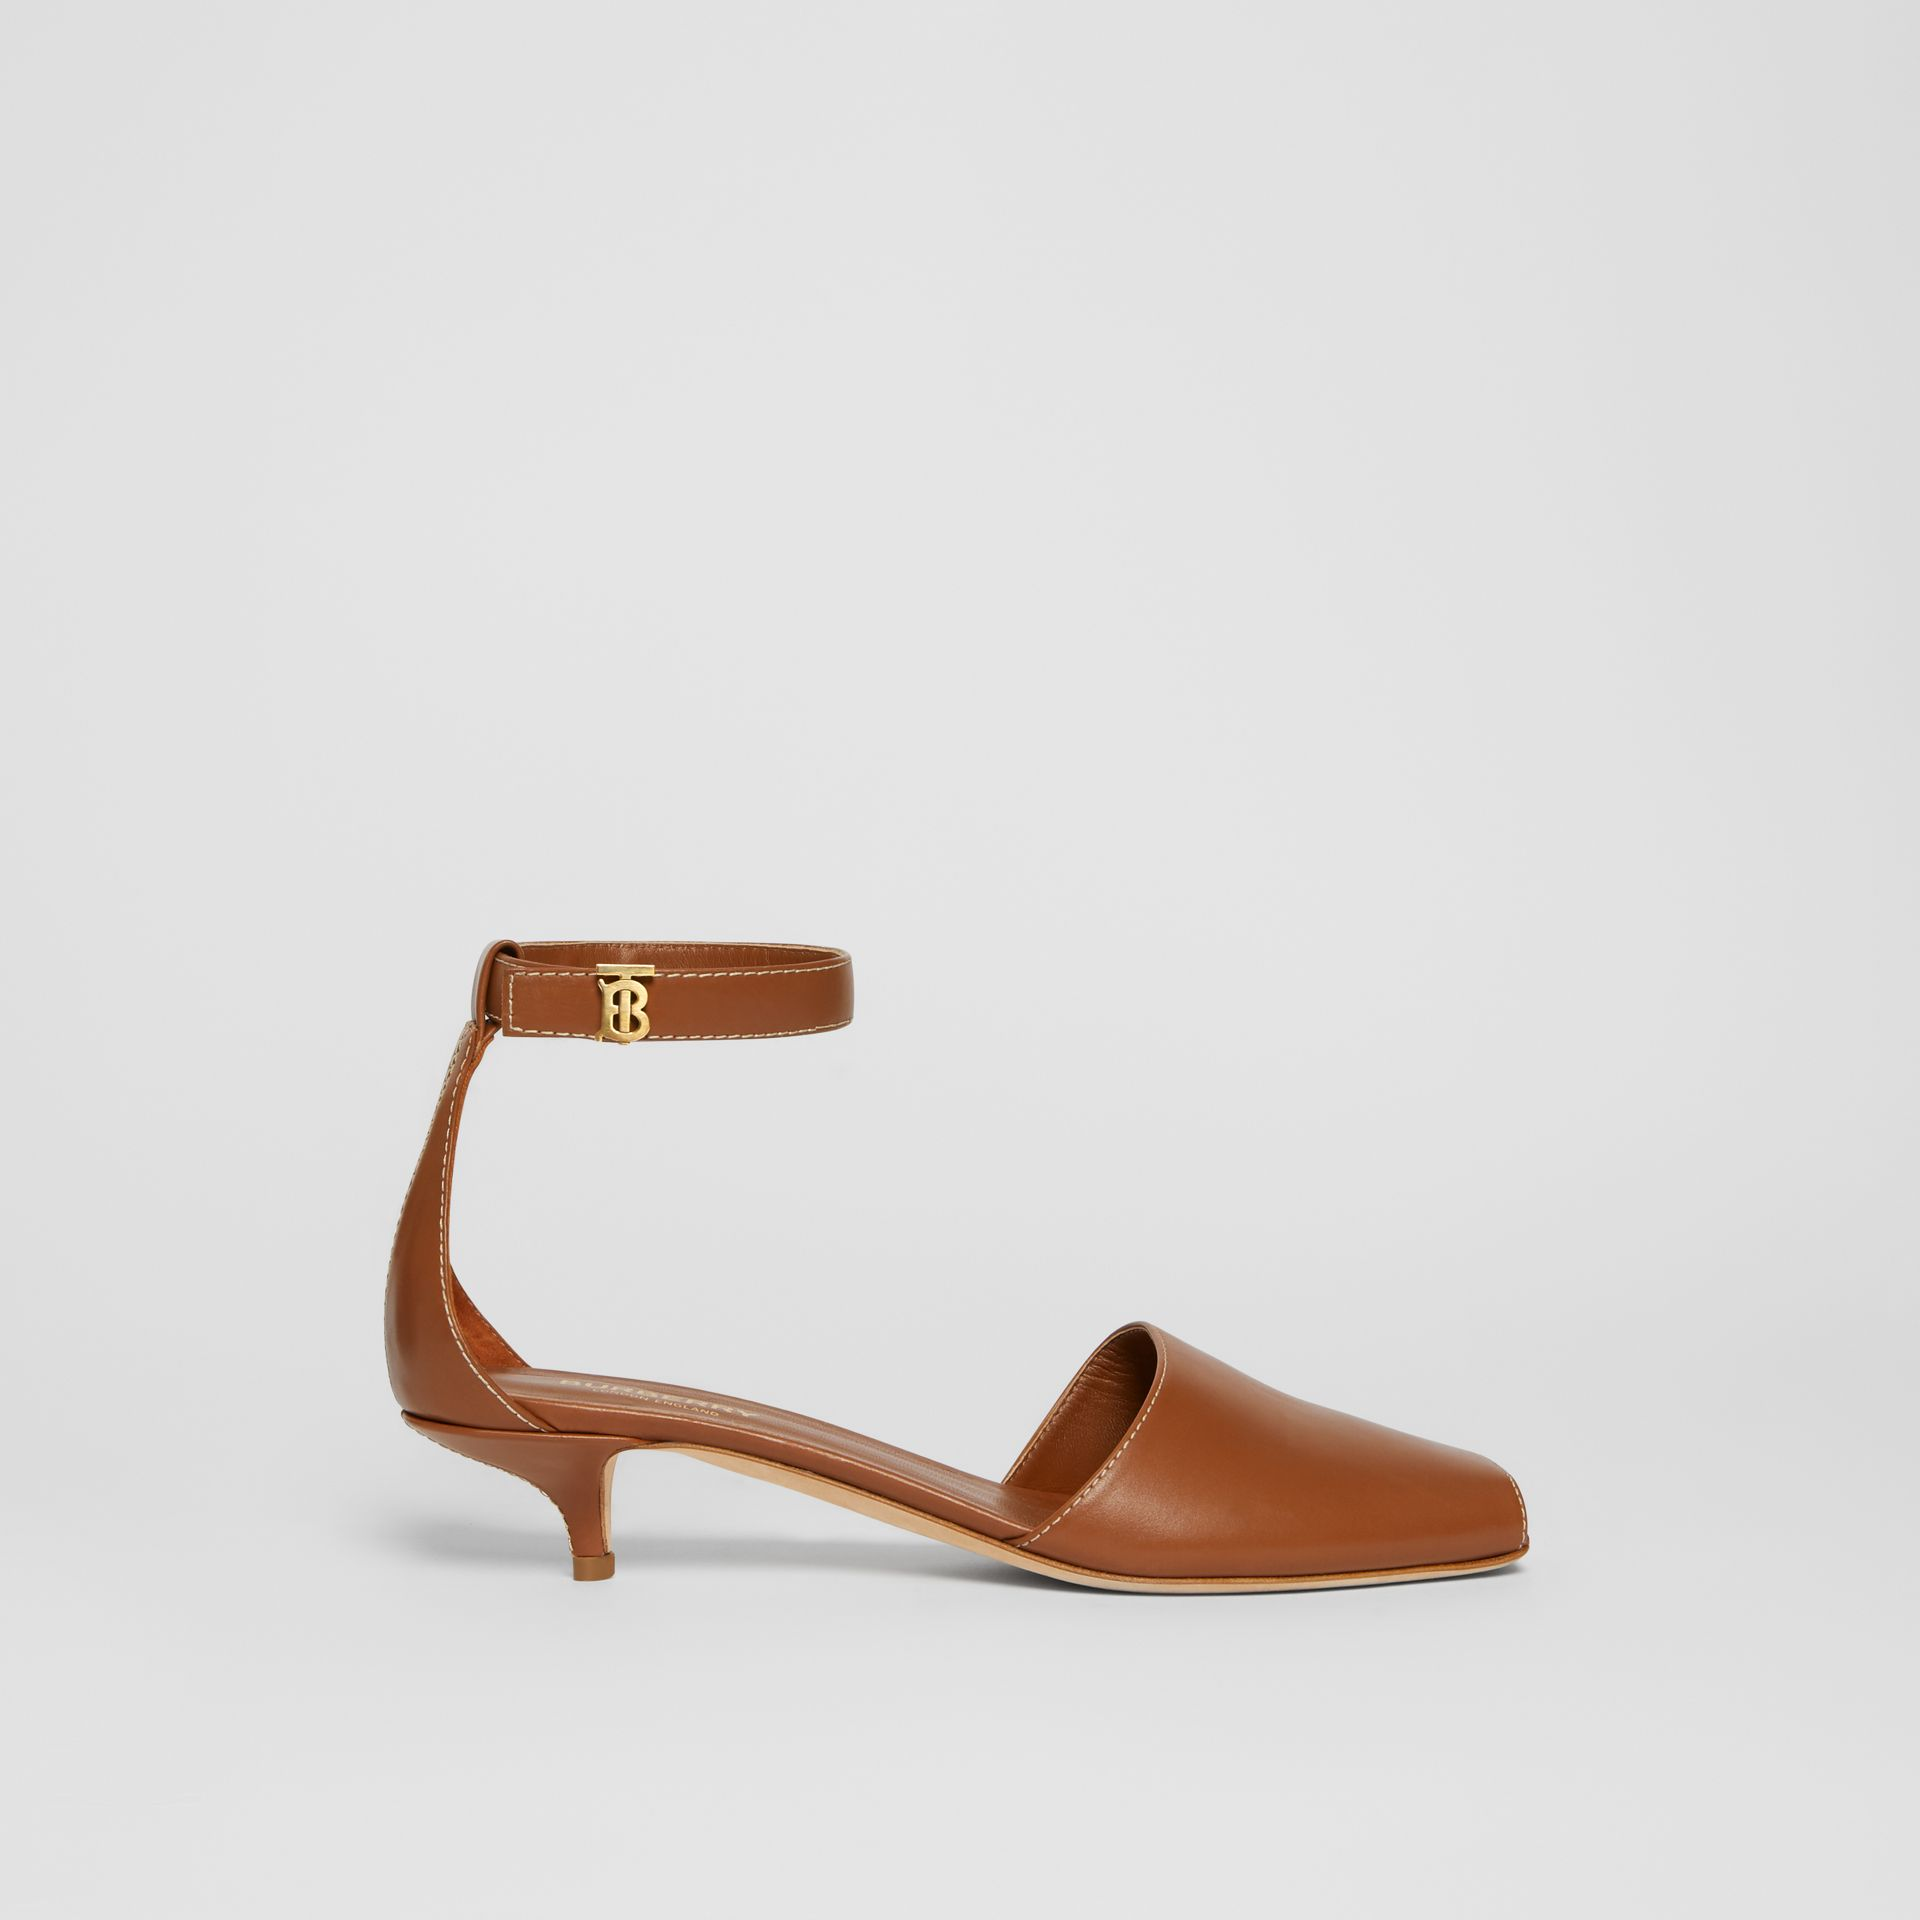 Monogram Motif Leather Kitten-heel Sandals in Tan - Women | Burberry - gallery image 5